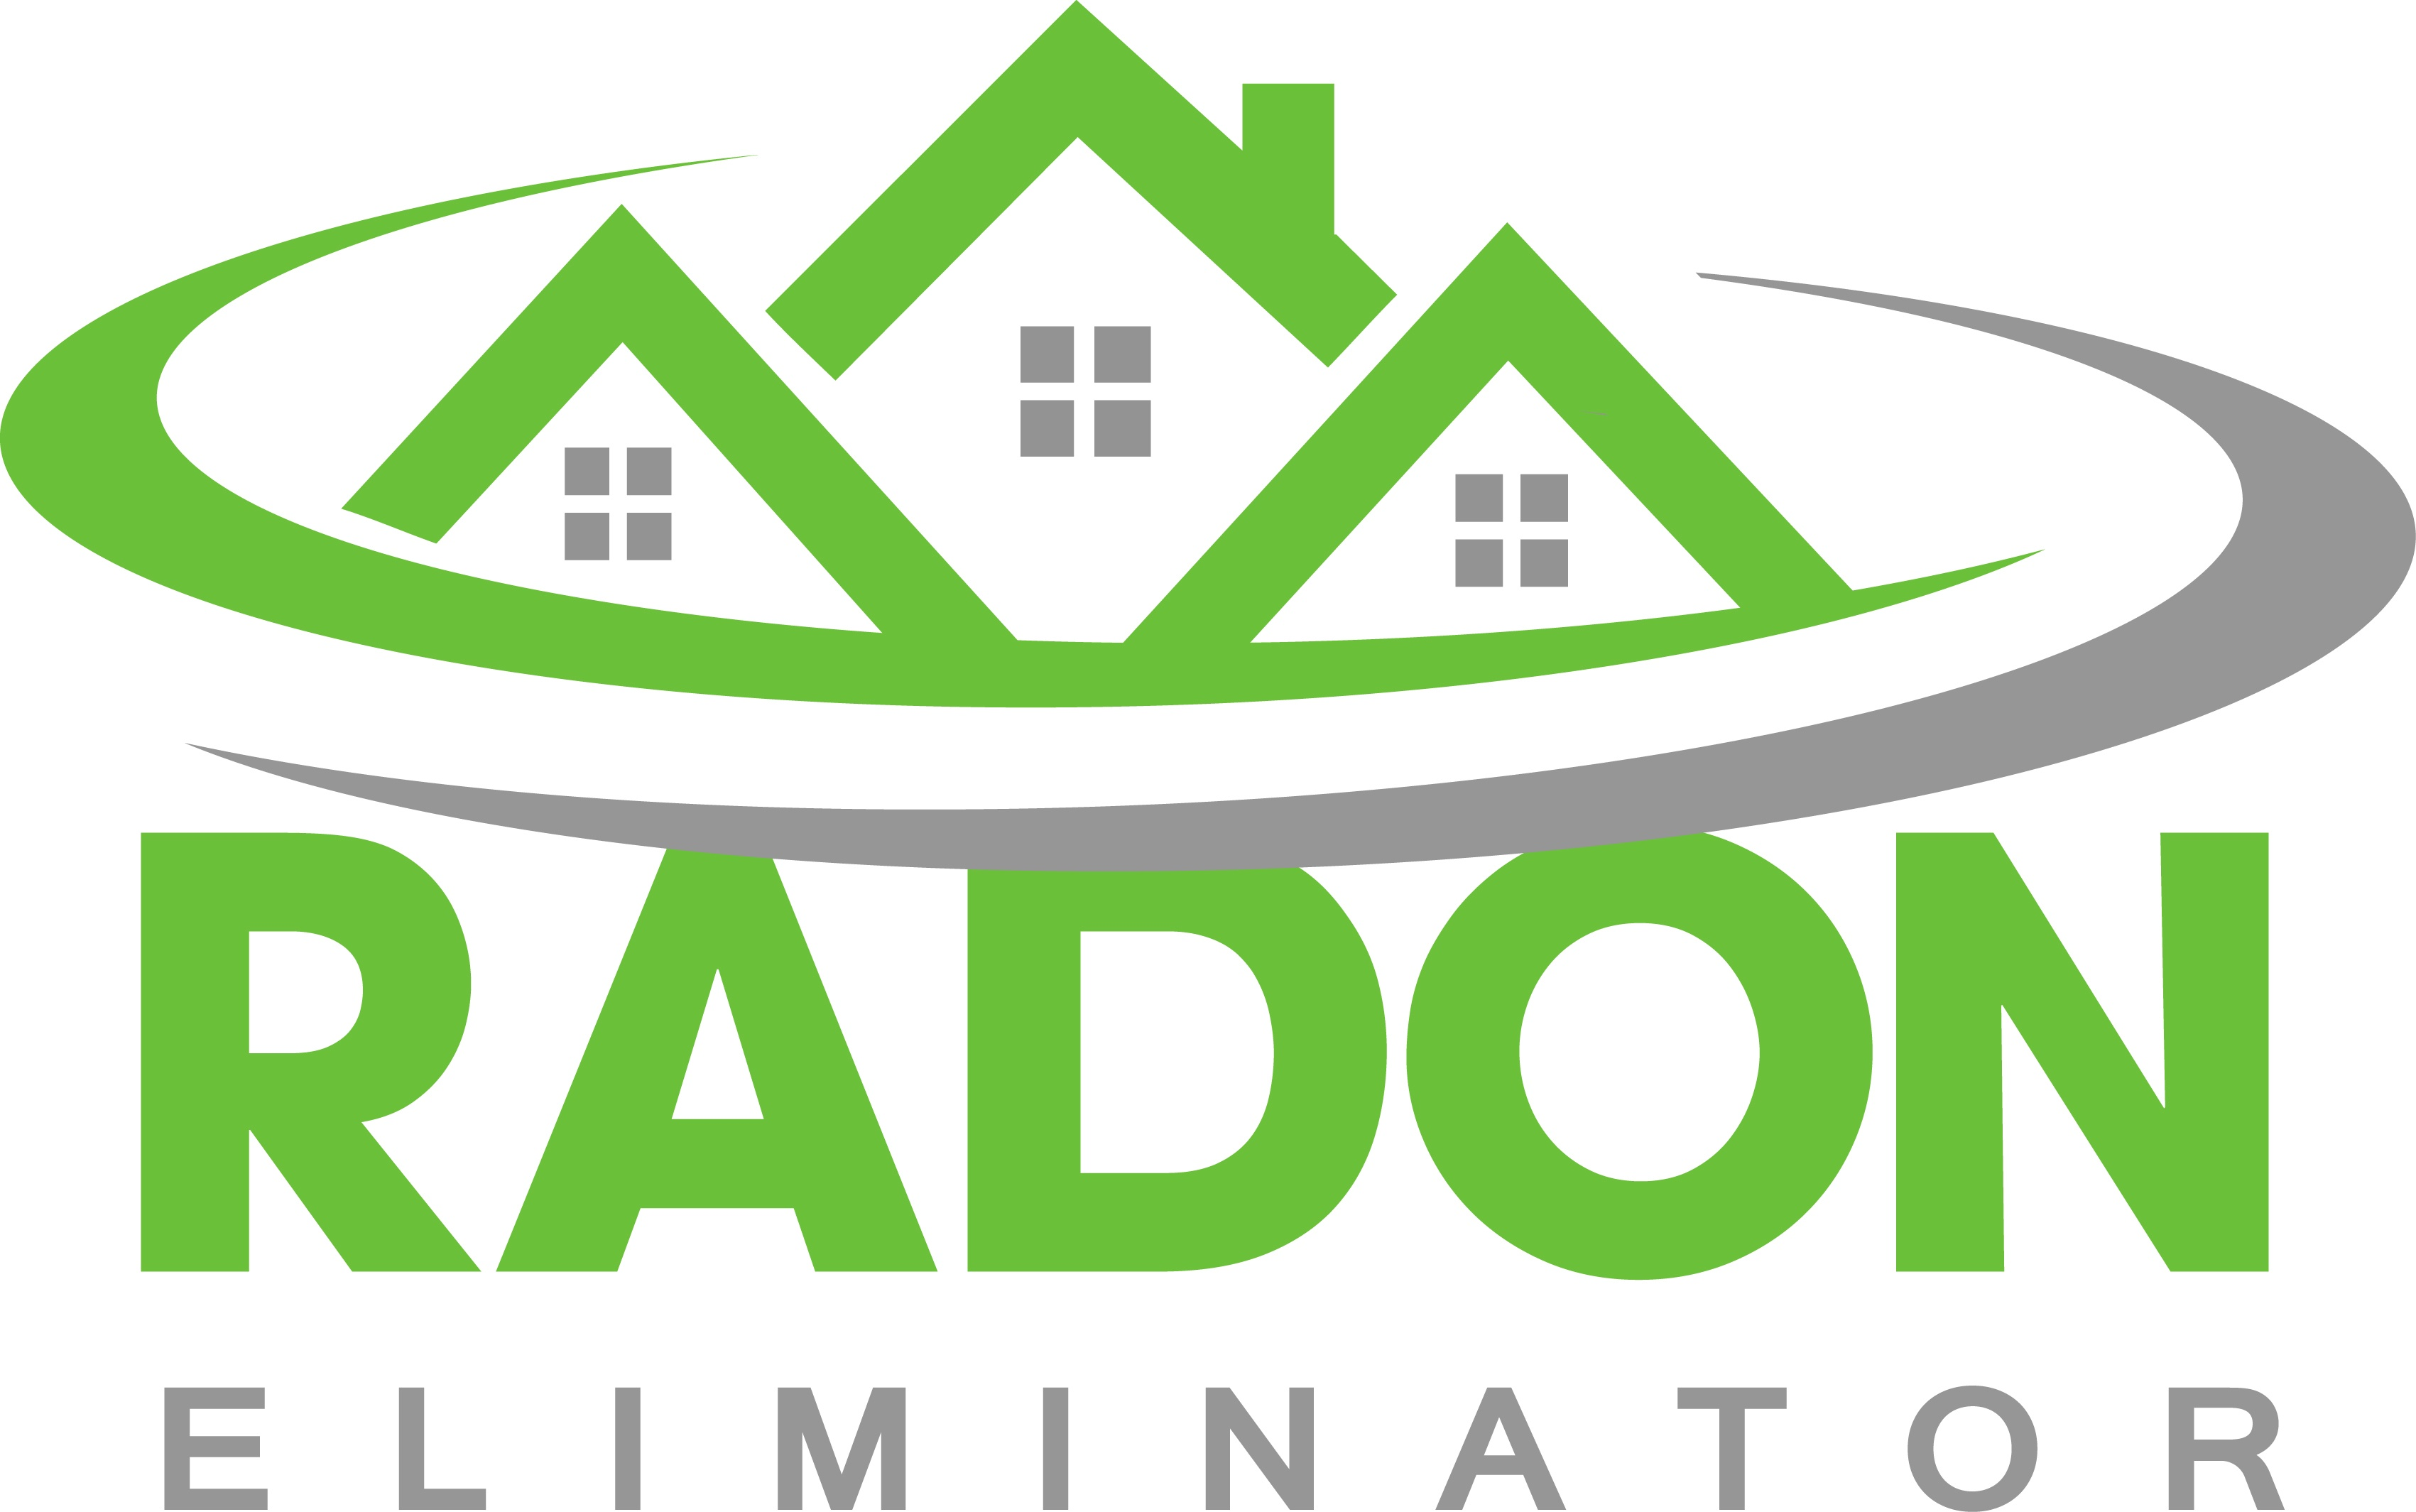 Radon Eliminator Mitigation and Testing.